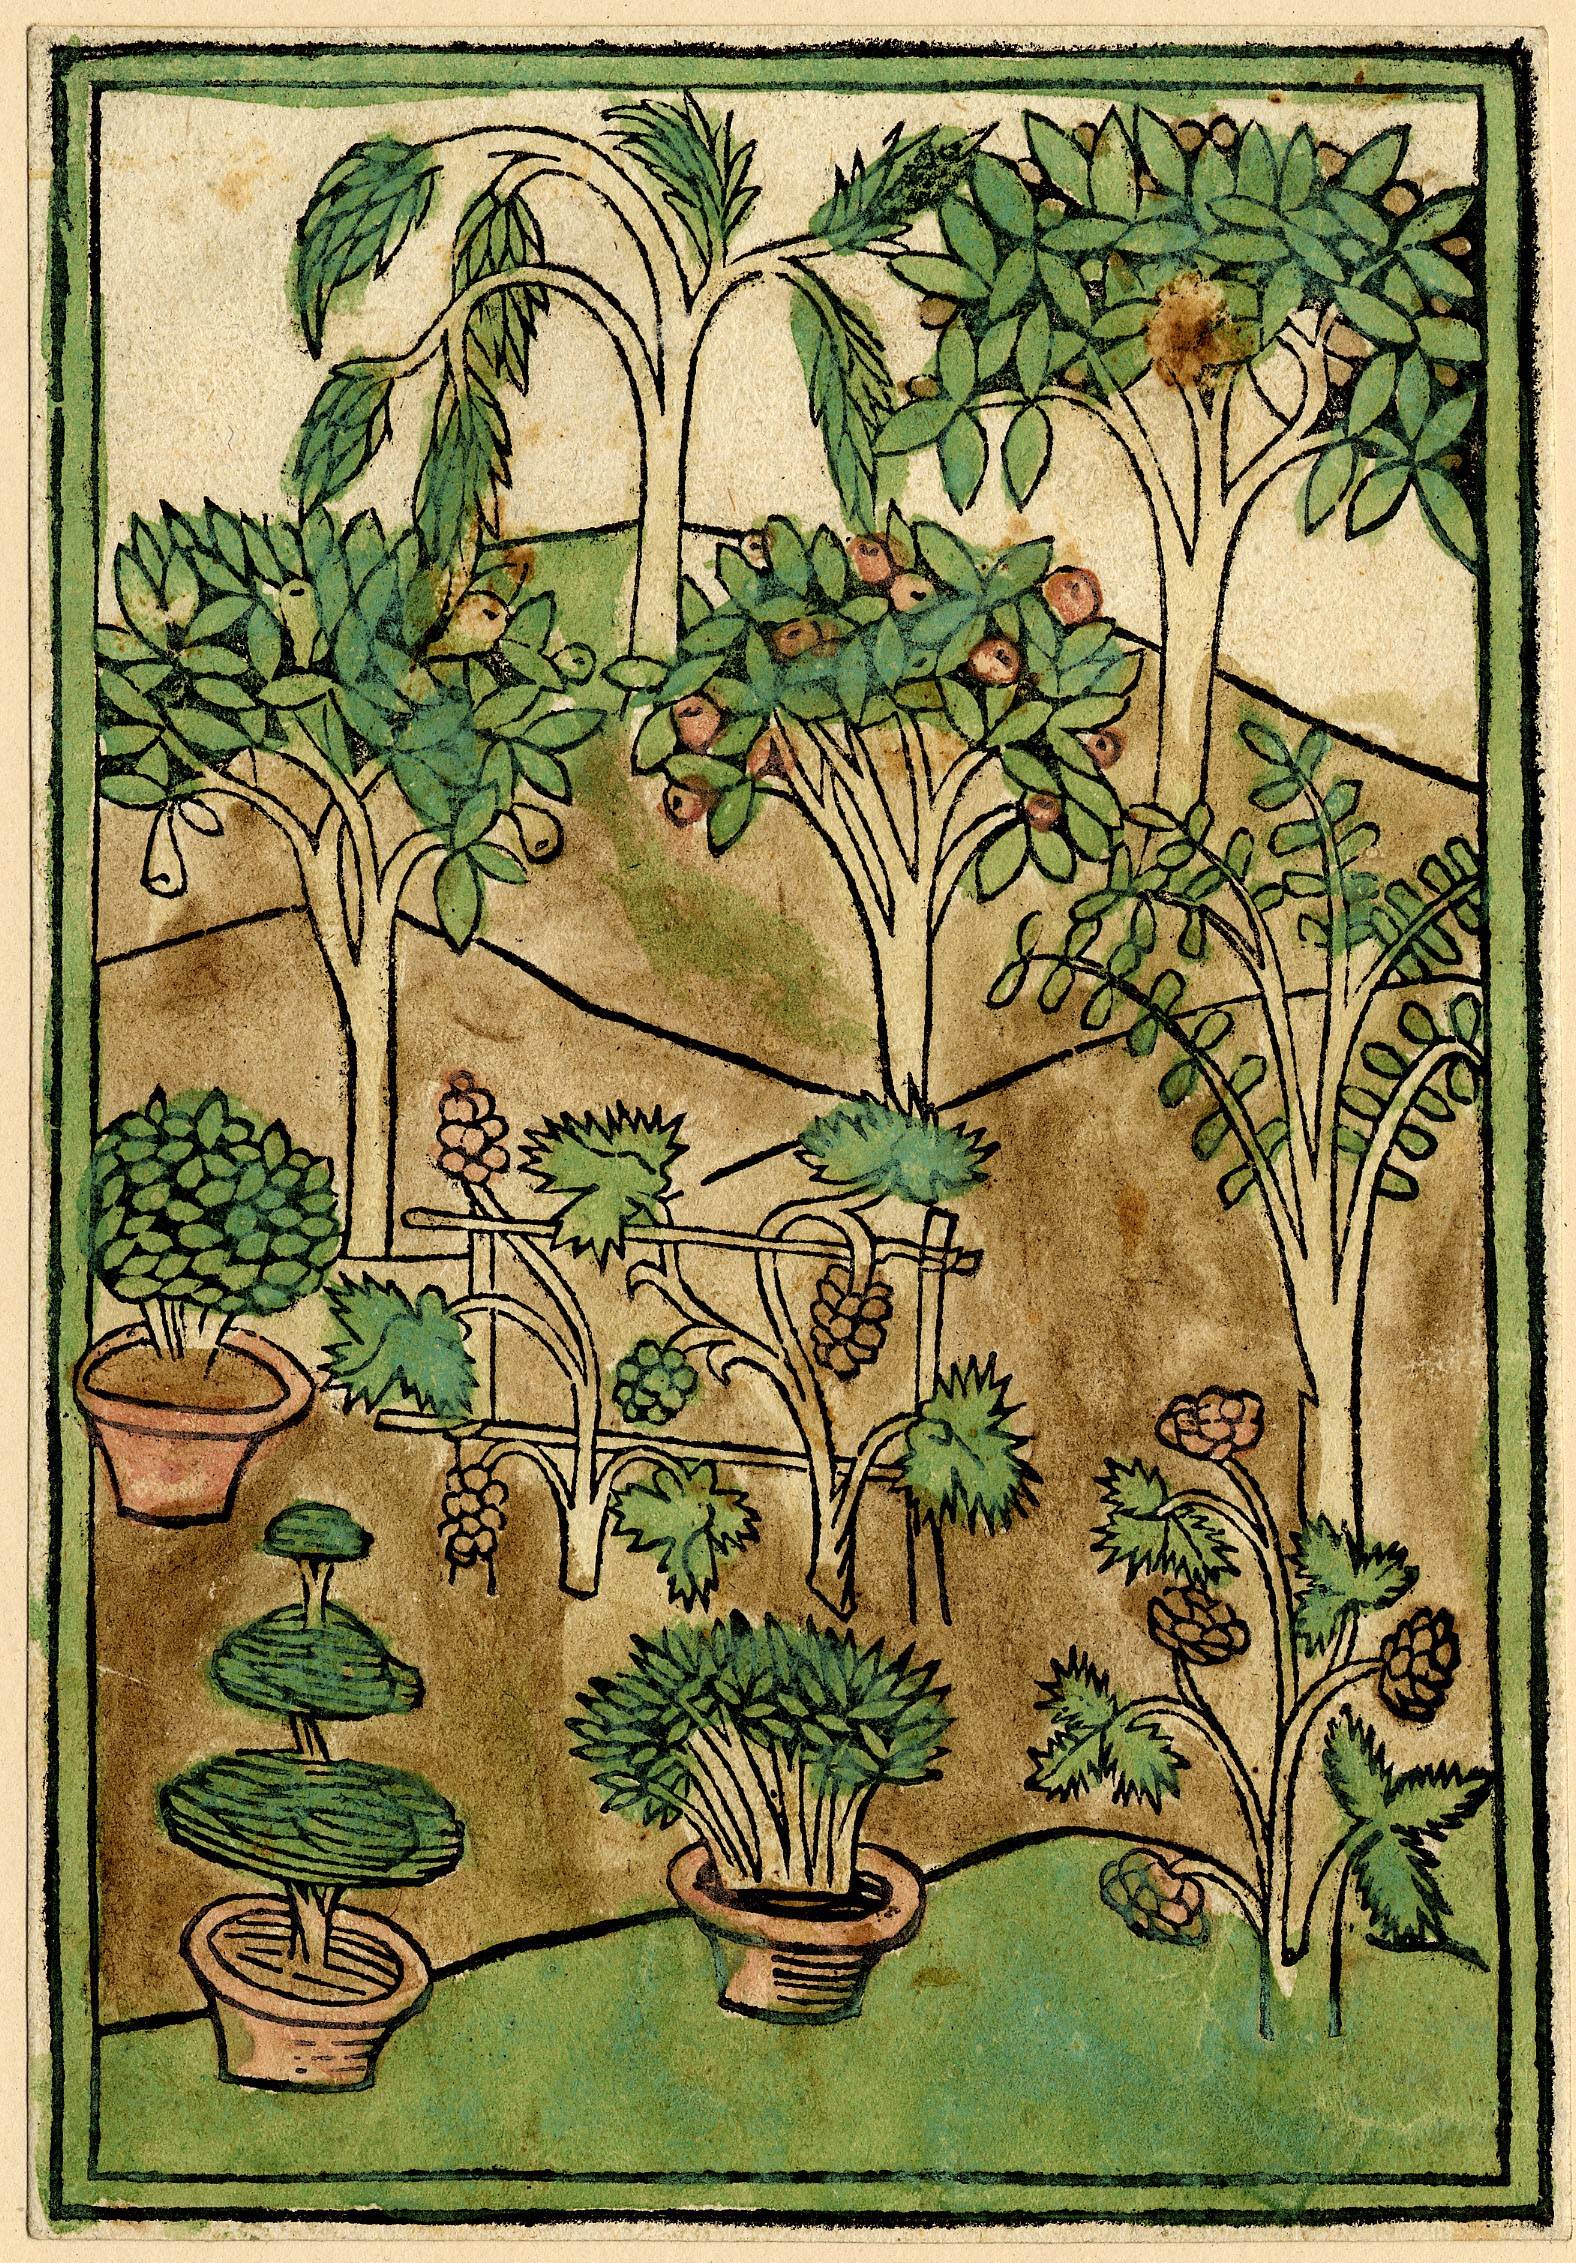 A print showing a variety of different plants. Smaller shrubs are shown in pots in the foreground and larger trees are shown in the background. Some of the trees have fruits.